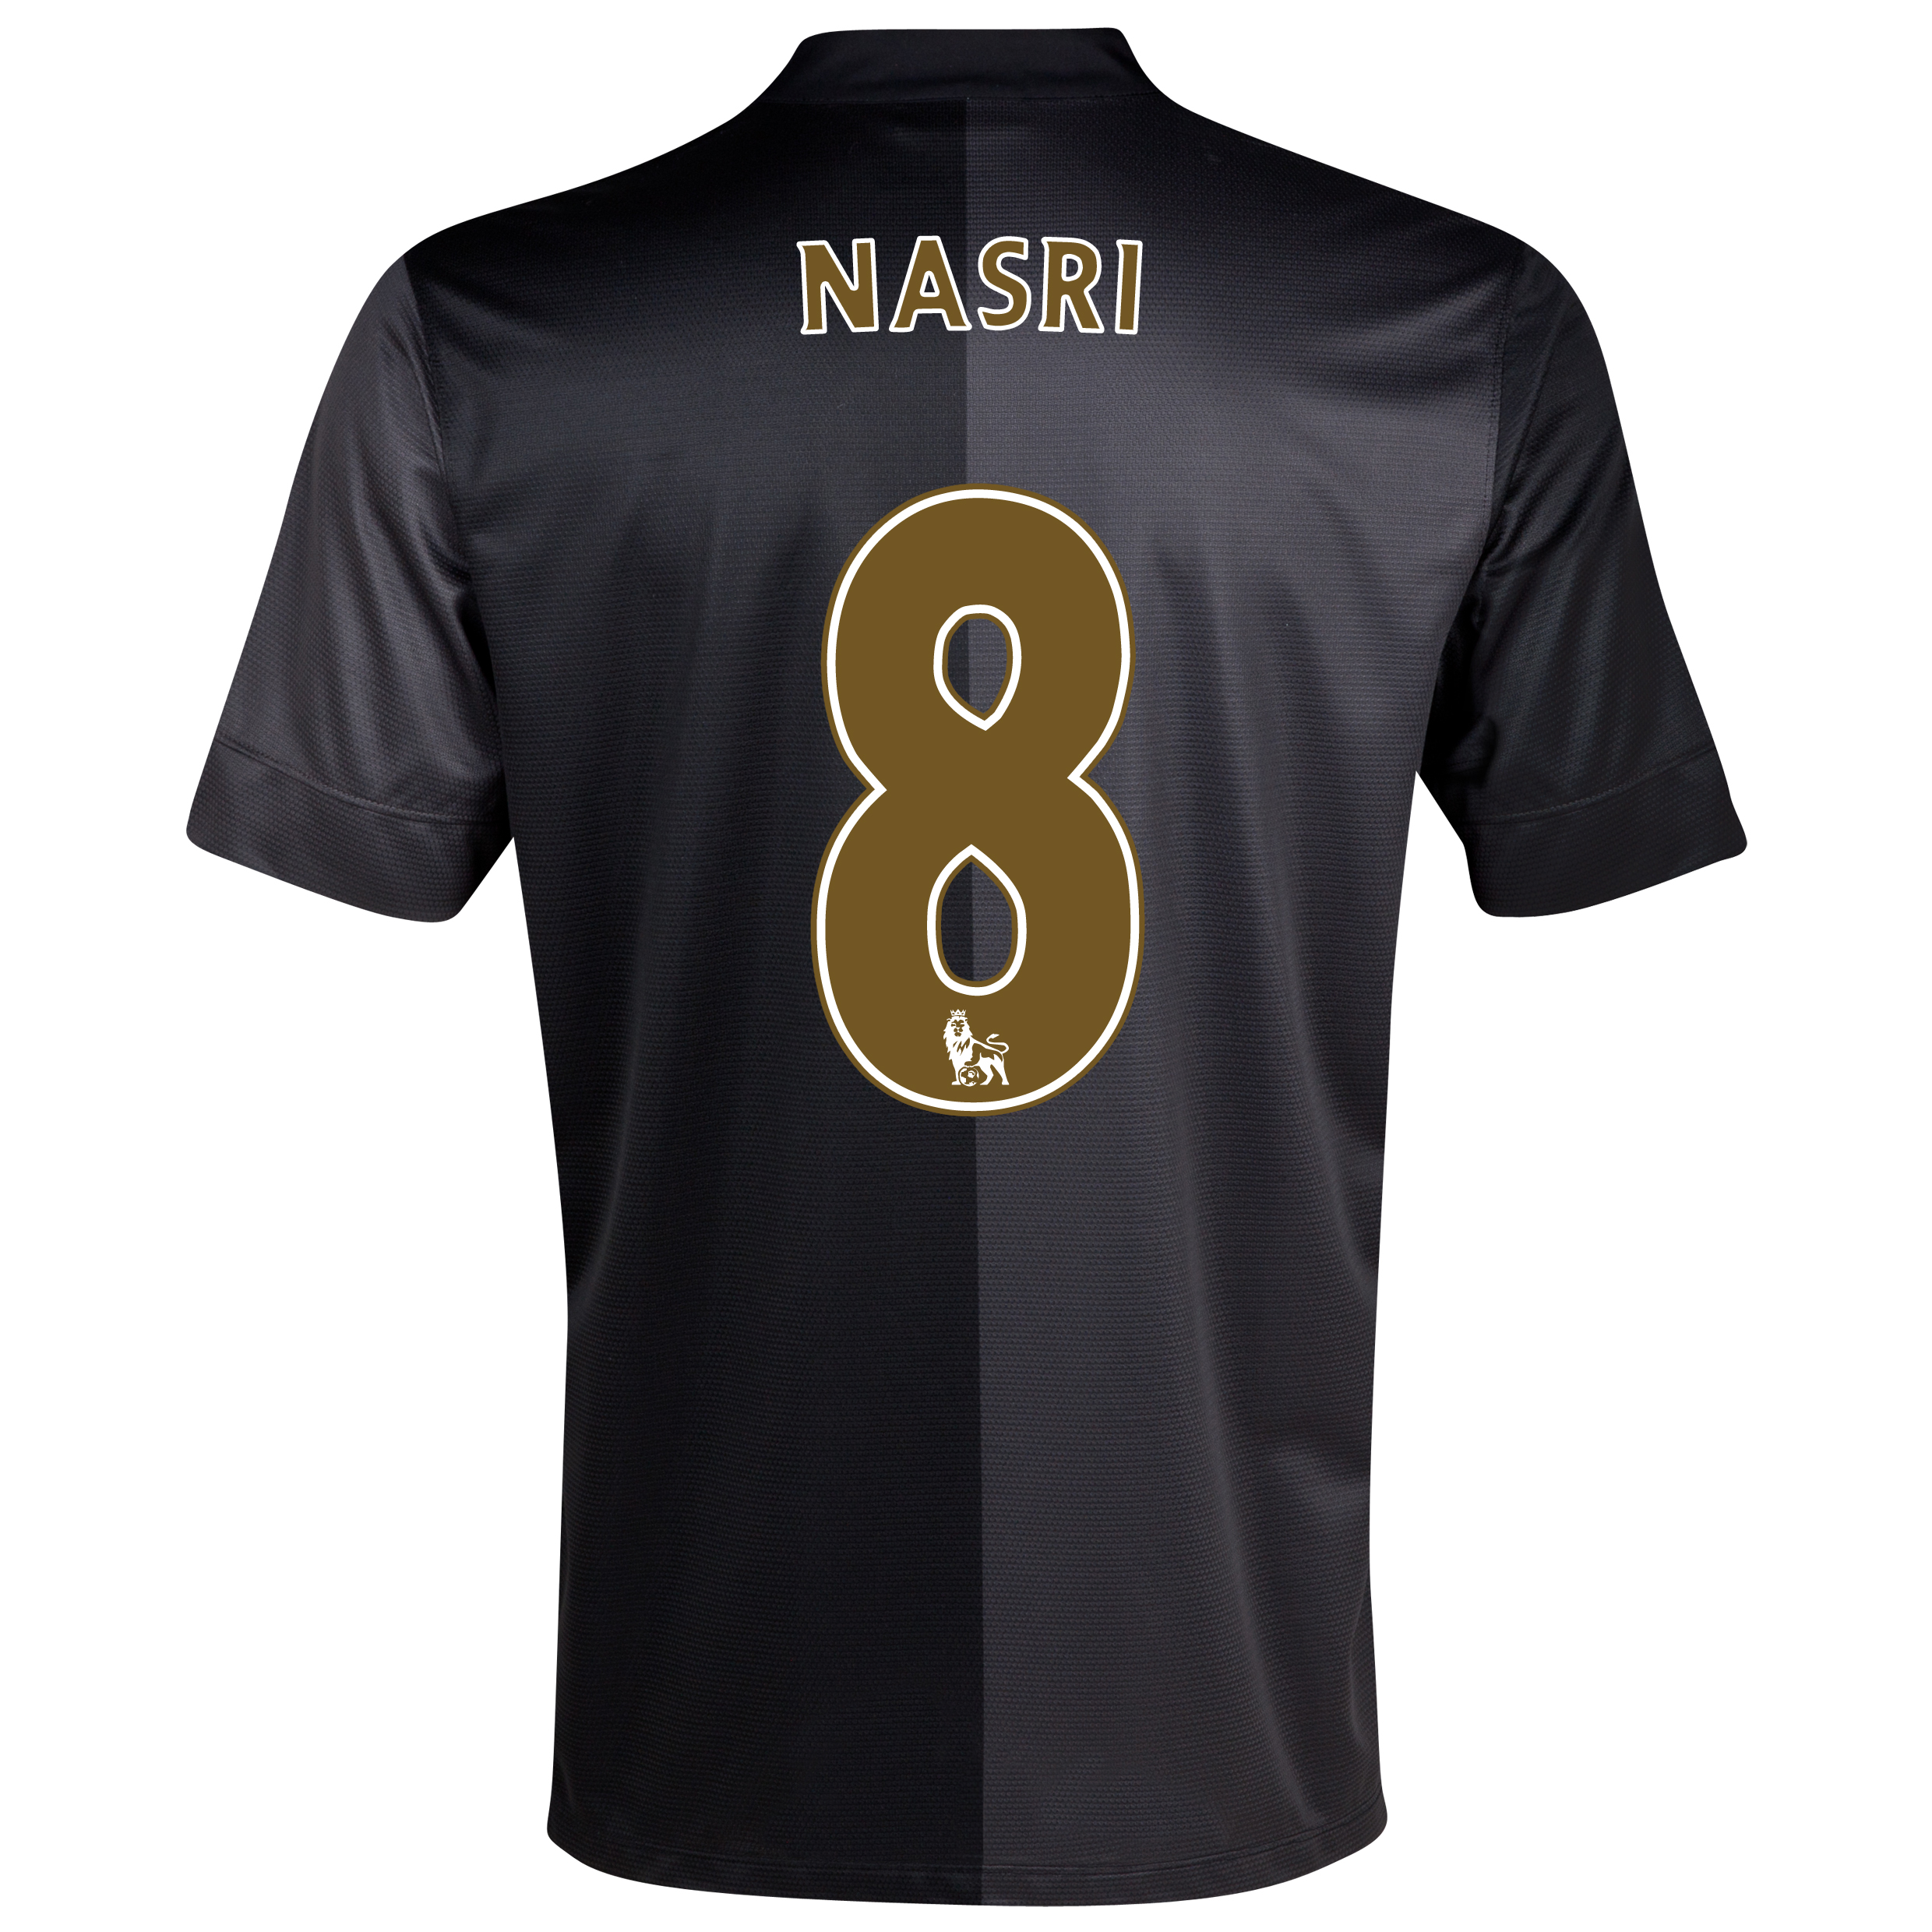 Nasri hero shirts